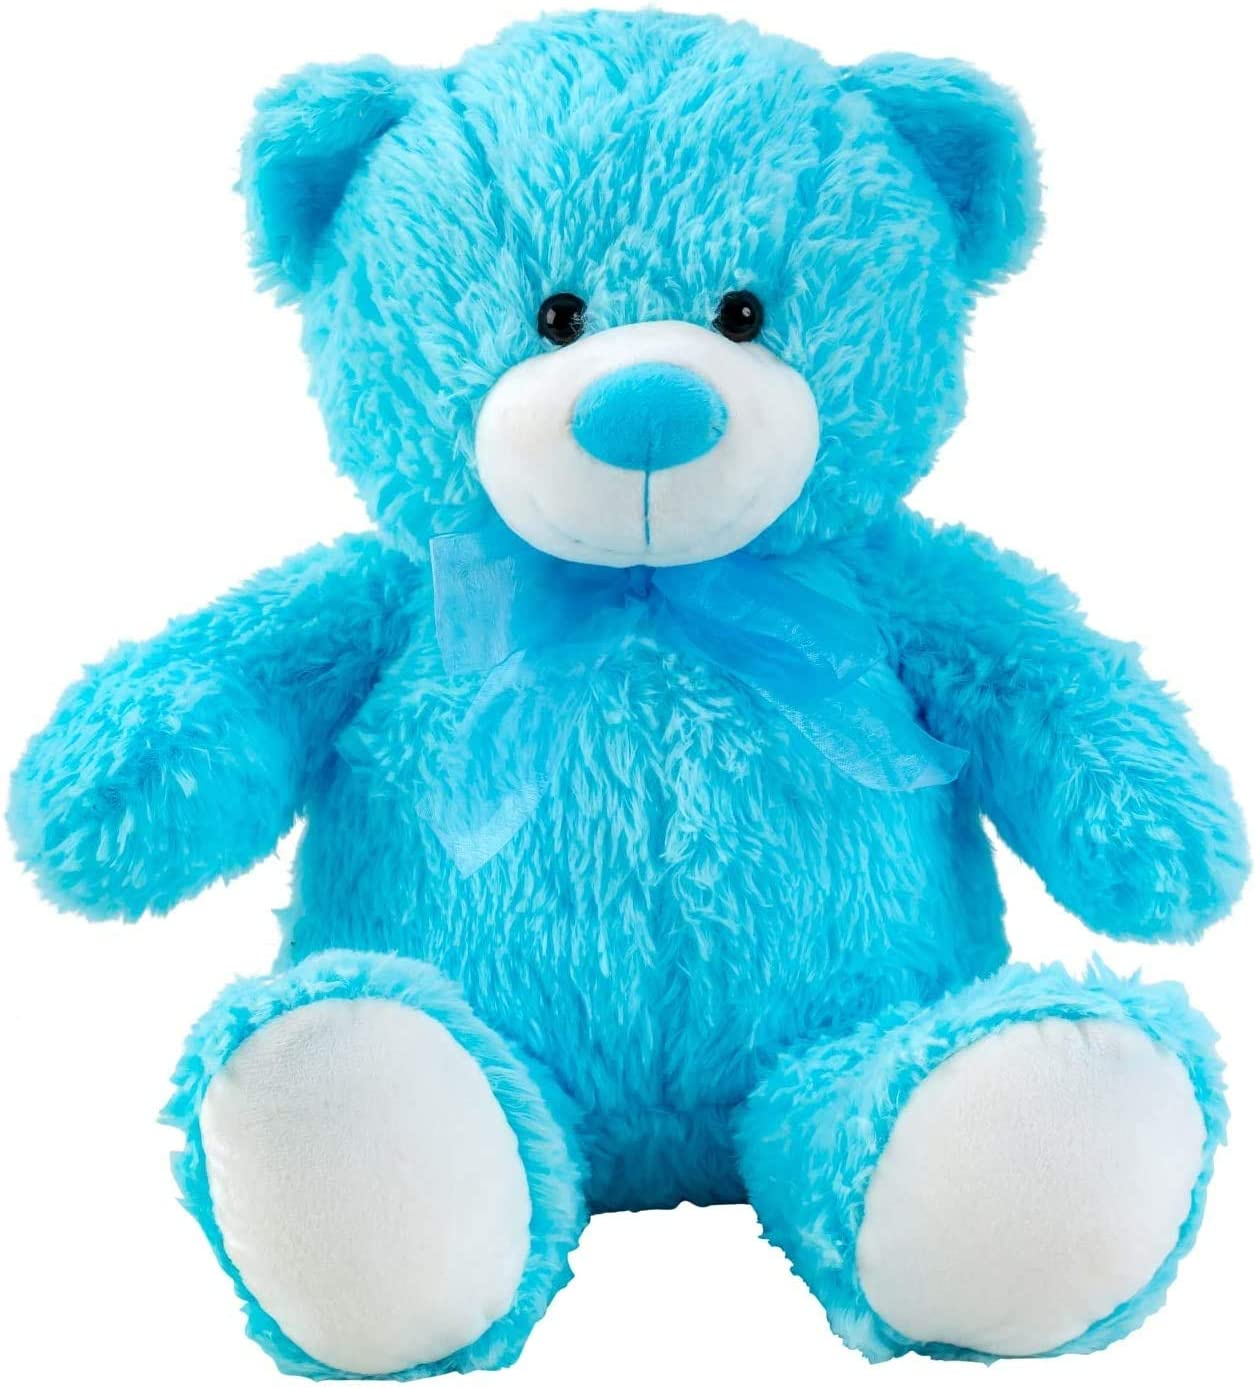 Cute Lamb Stuffed Animals, Lifestyle More Teddy Bear Cuddly Bear Blue With Bow 50 Cm Tall Plush Bear Cuddly Toy Velvety Soft To Love Amazon Co Uk Toys Games